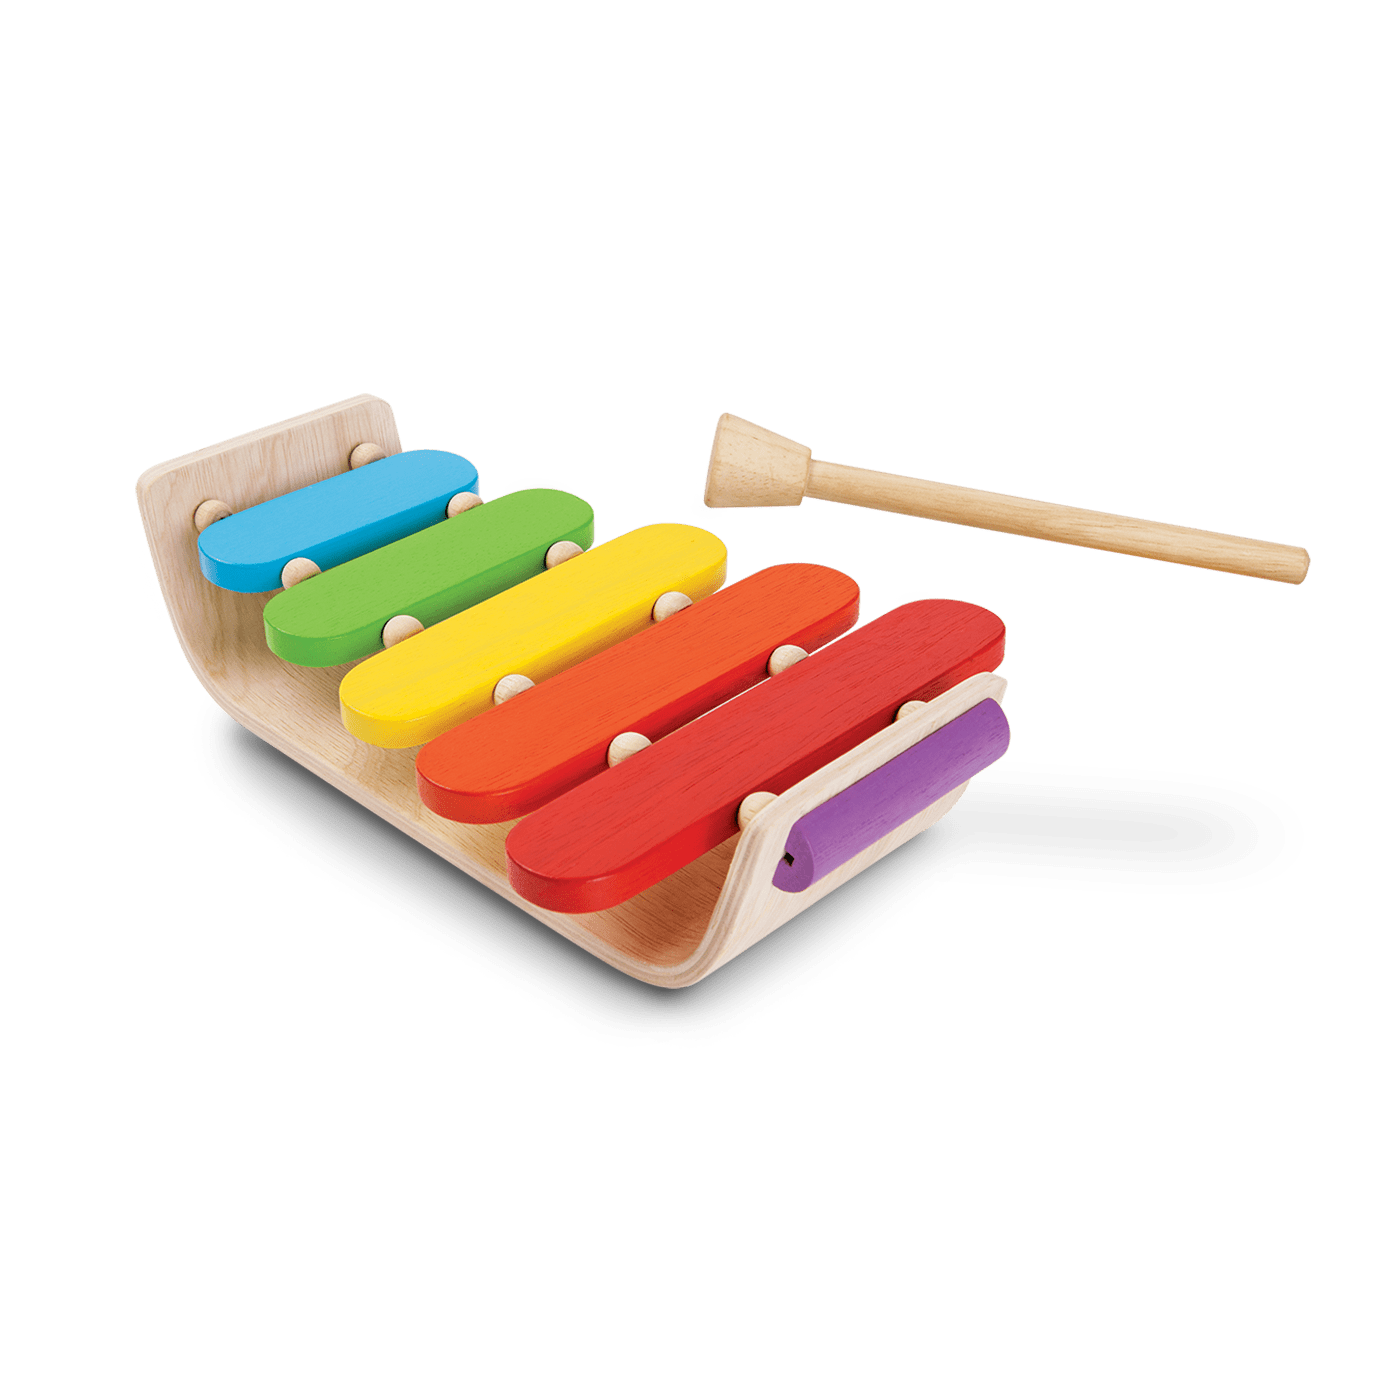 6405_PlanToys_OVAL_XYLOPHONE_Music_Musical_Auditory_Concentration_Emotion_Coordination_Creative_18m_Wooden_toys_Education_toys_Safety_Toys_Non-toxic_0.png